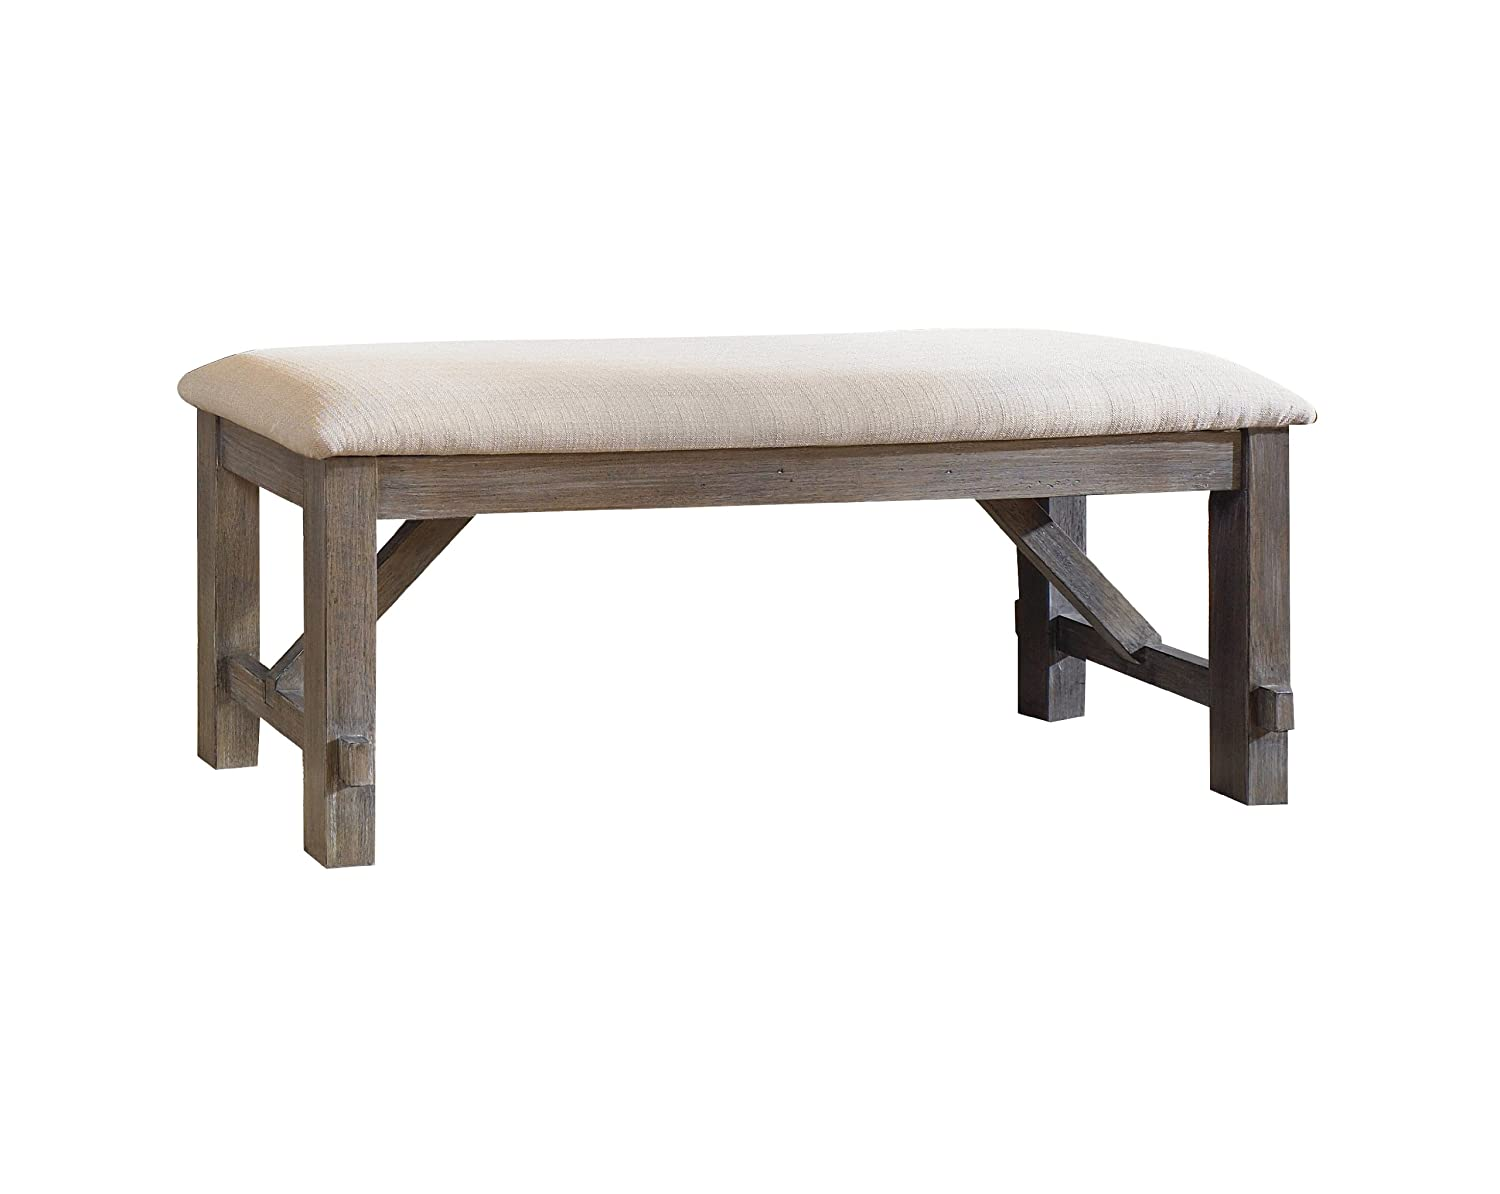 Amazon.com - Powell Turino Dining Bench - Table Benches